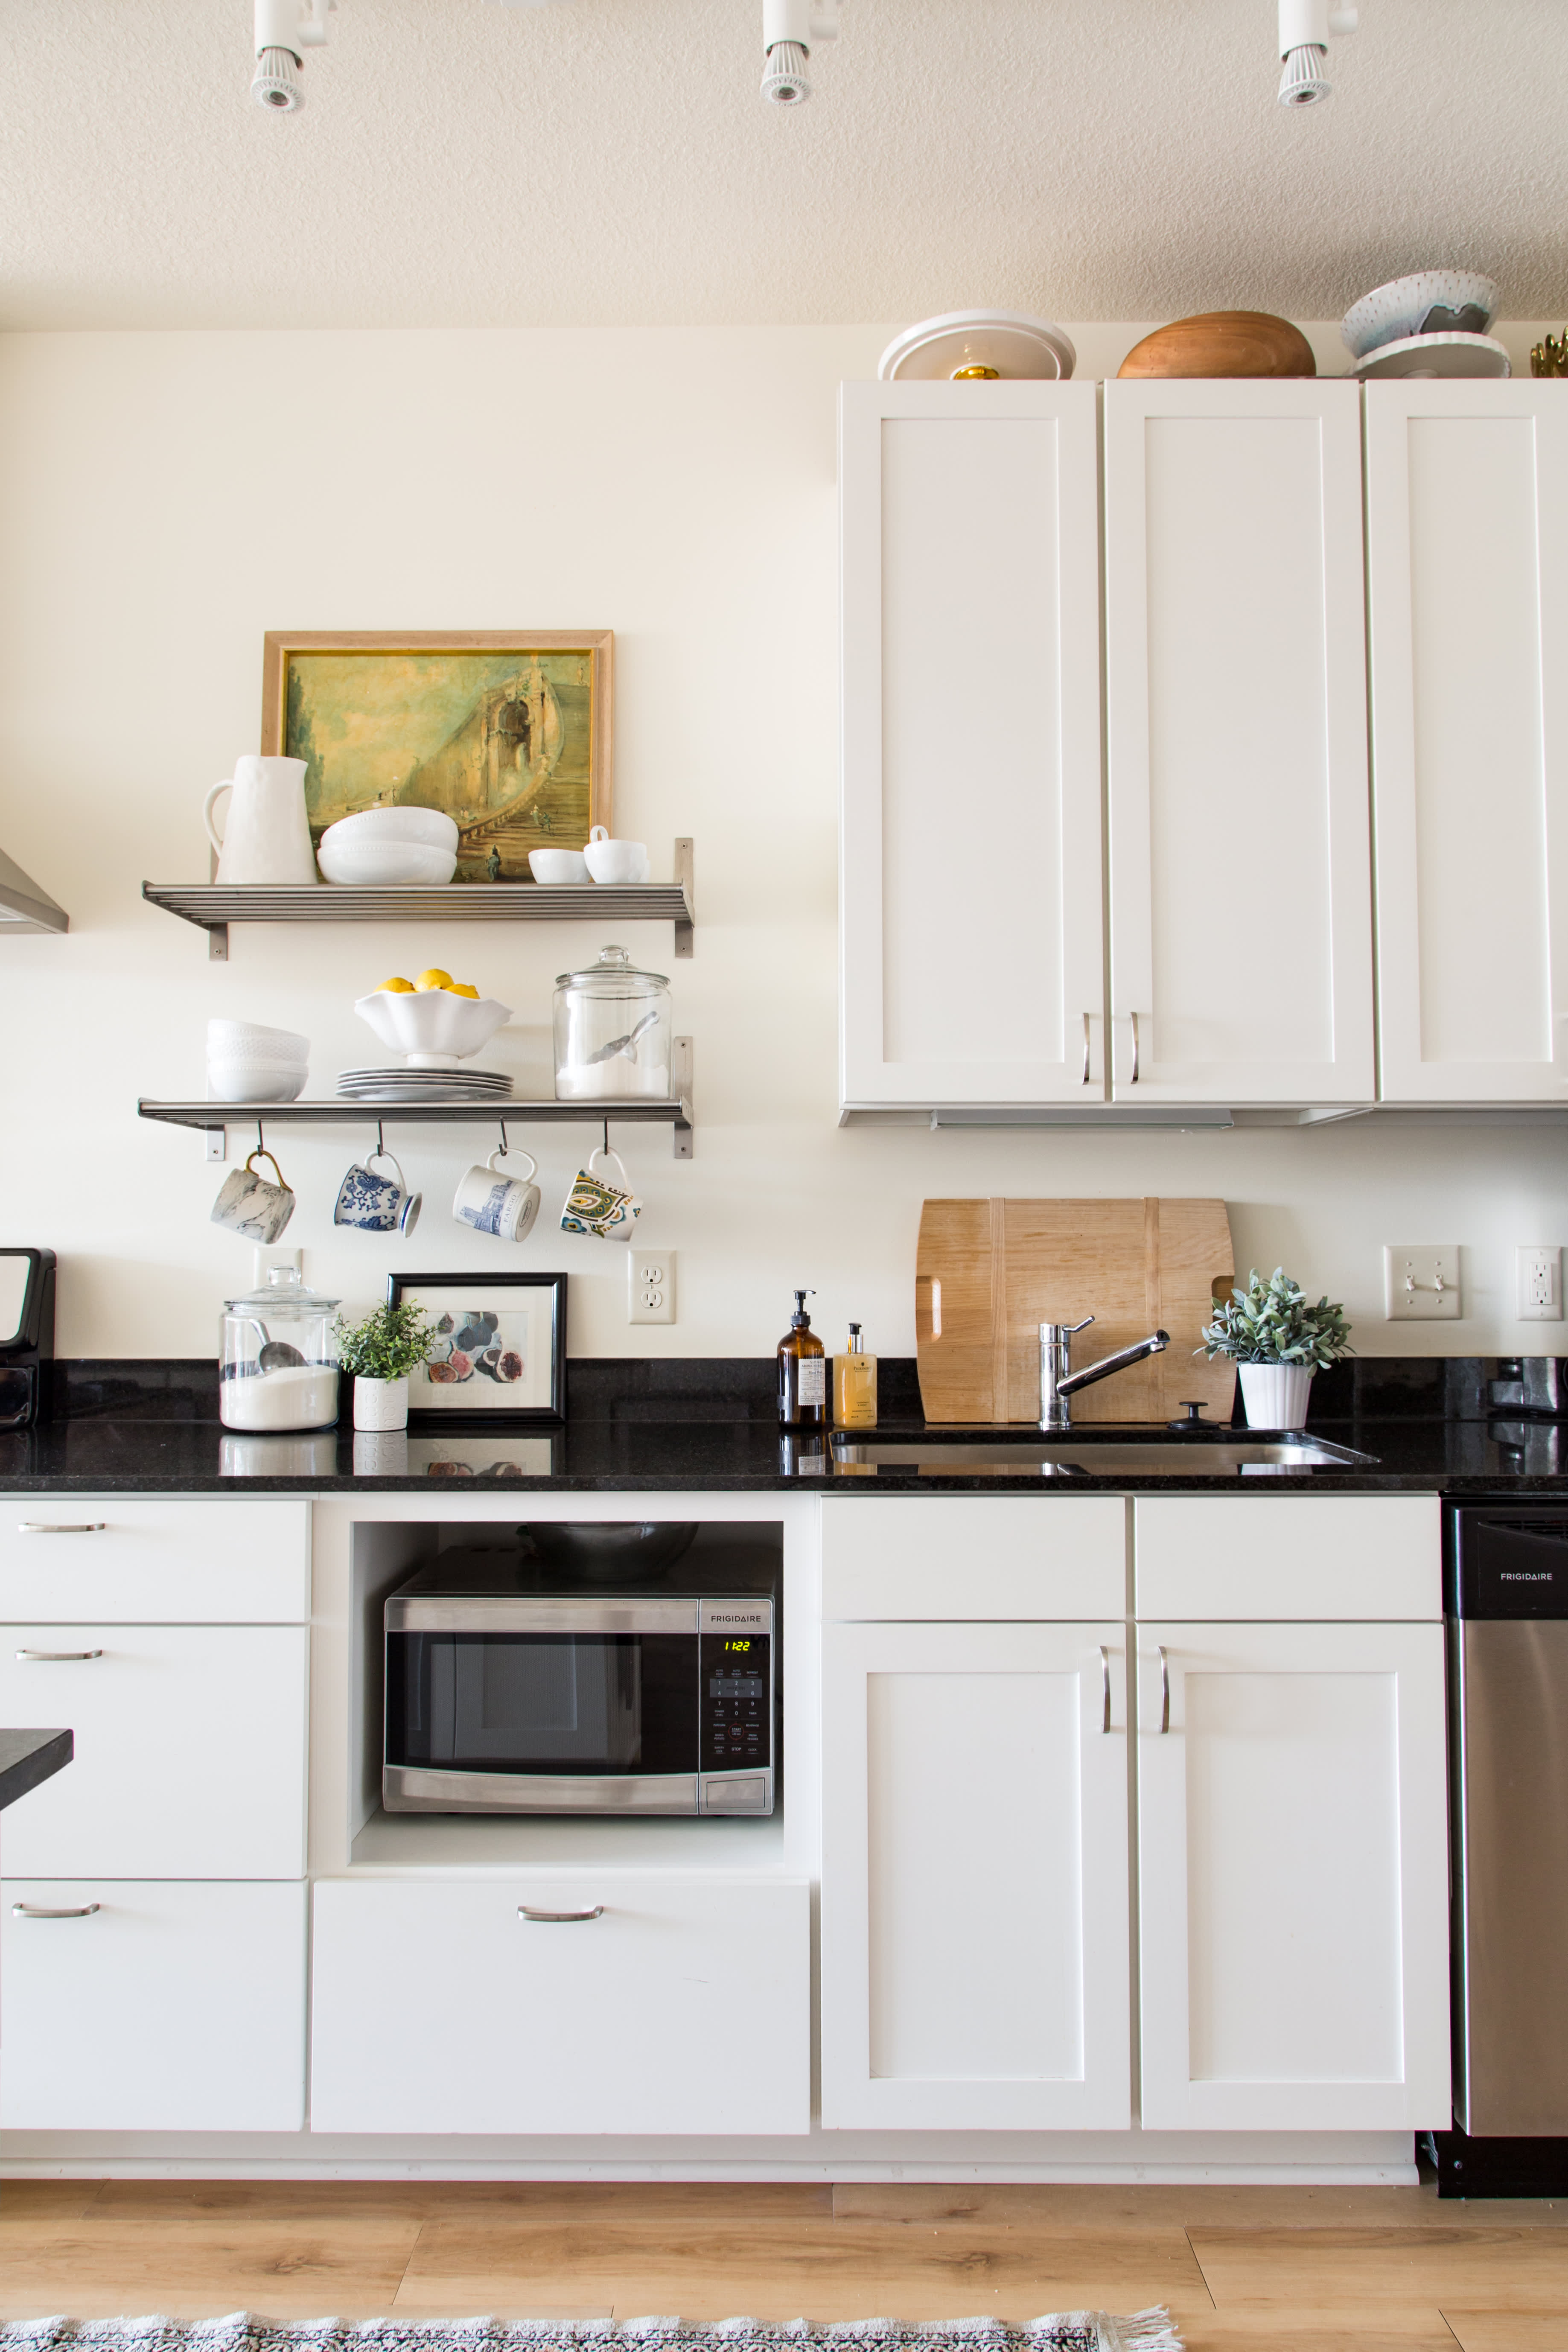 Why Didn't We Think of That? 18 Ingenious Kitchen Organizing Tips from Our Readers